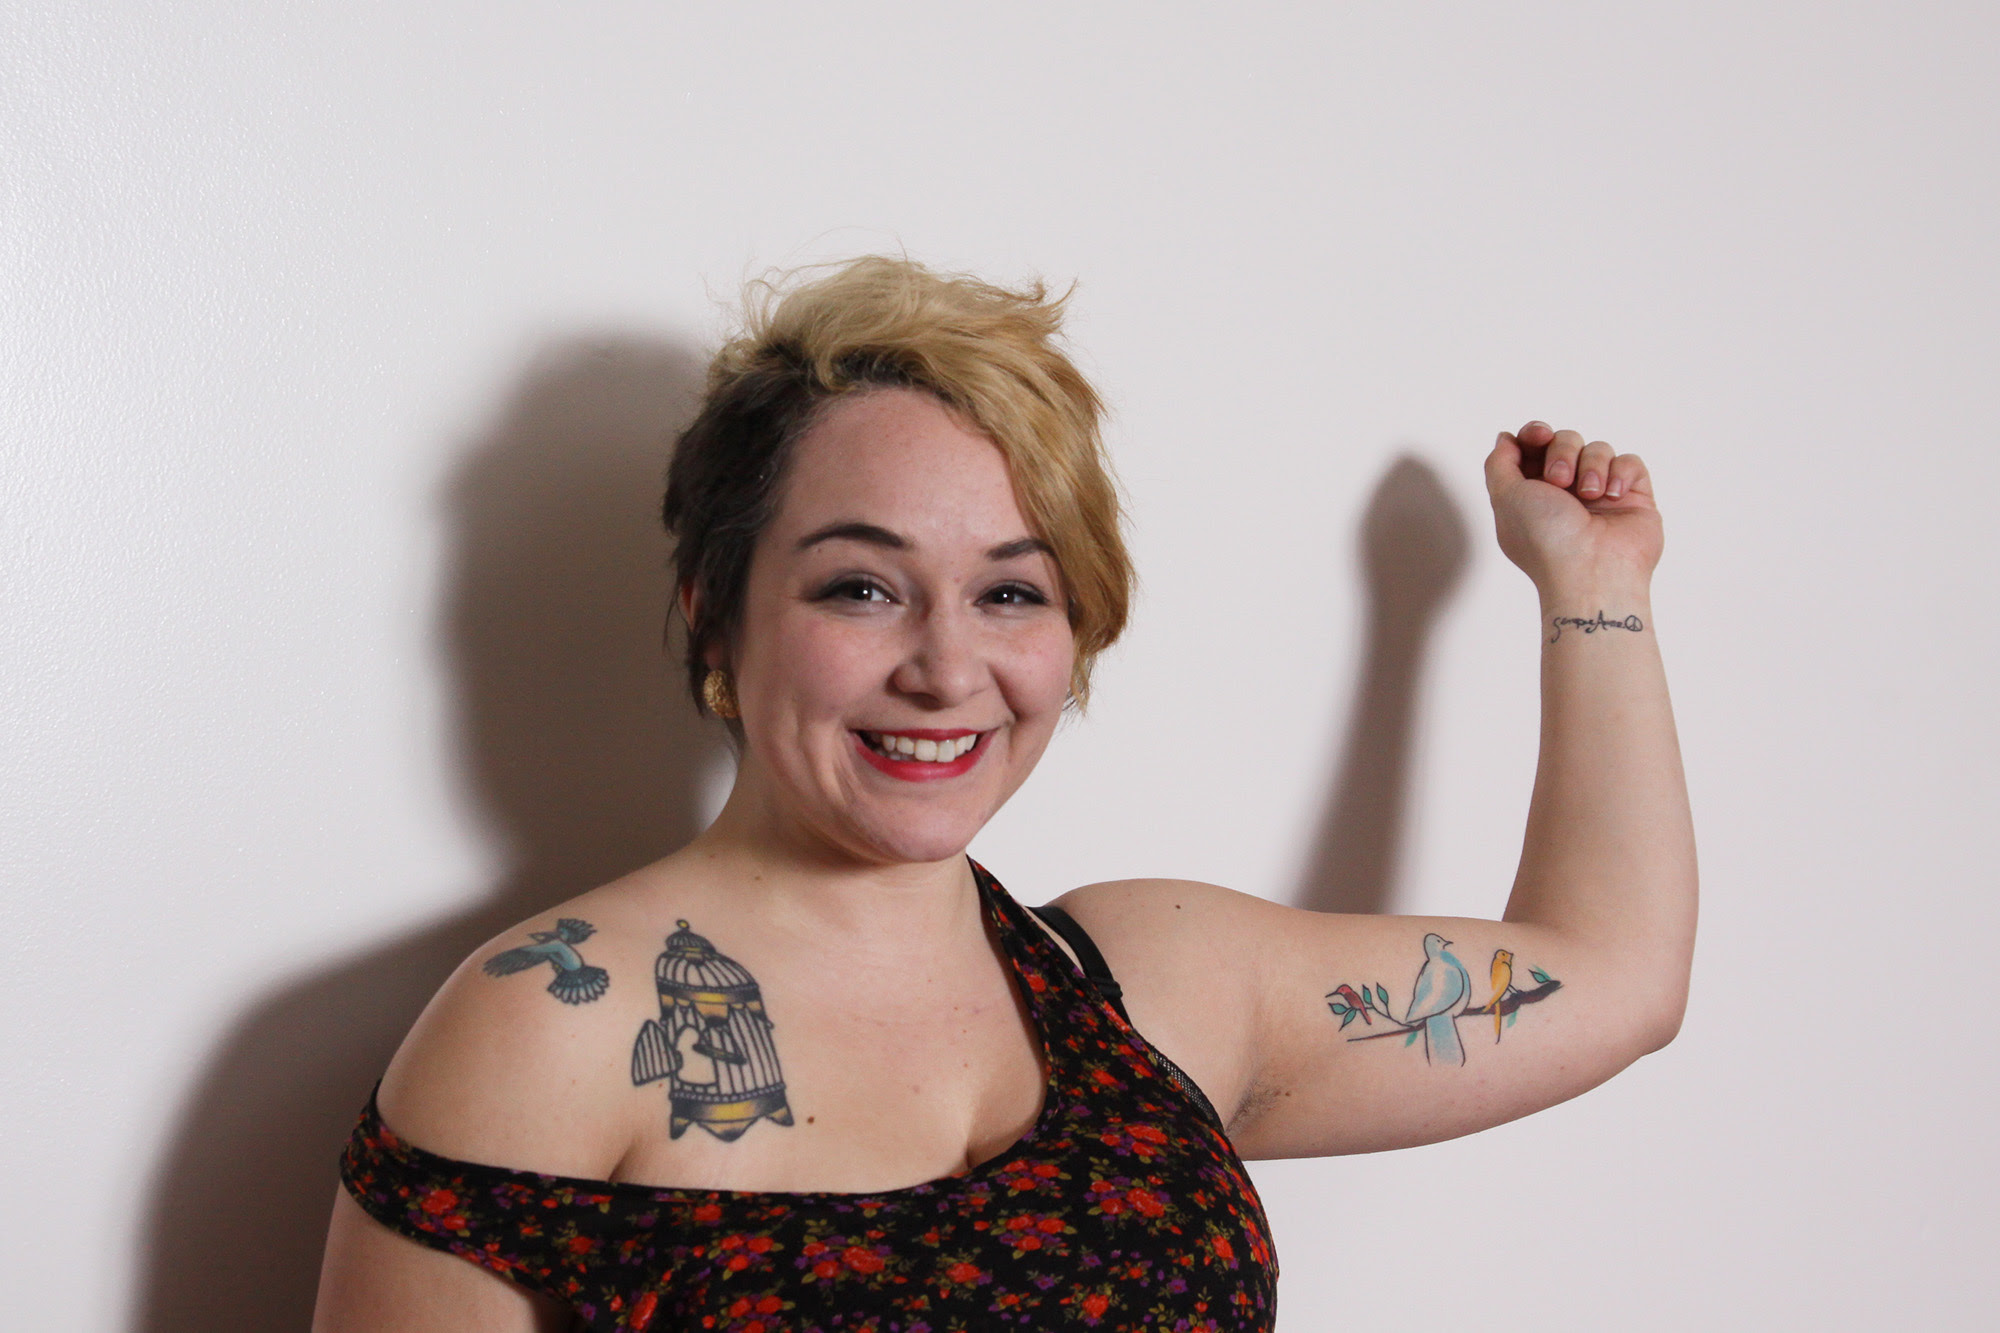 Ink Spill Students Share The Stories Behind Their Tattoos The Record